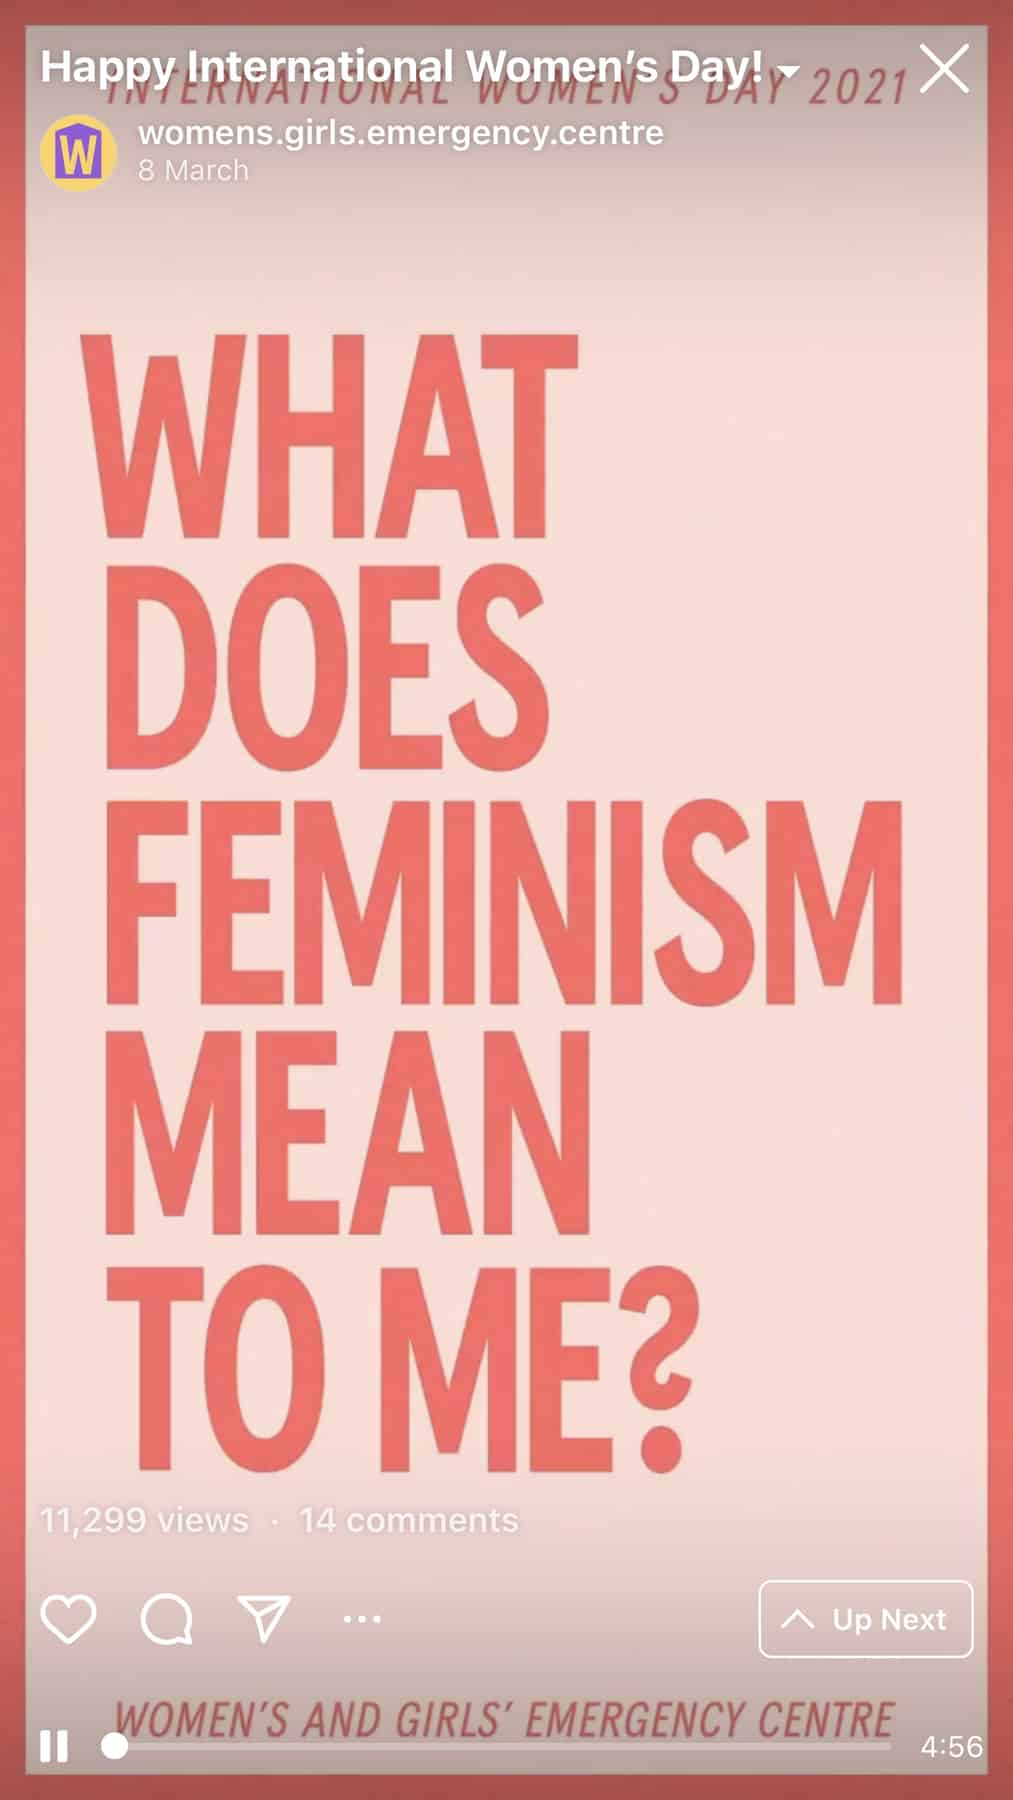 Women and girls emergency centre asking 'what does feminism mean to me?'